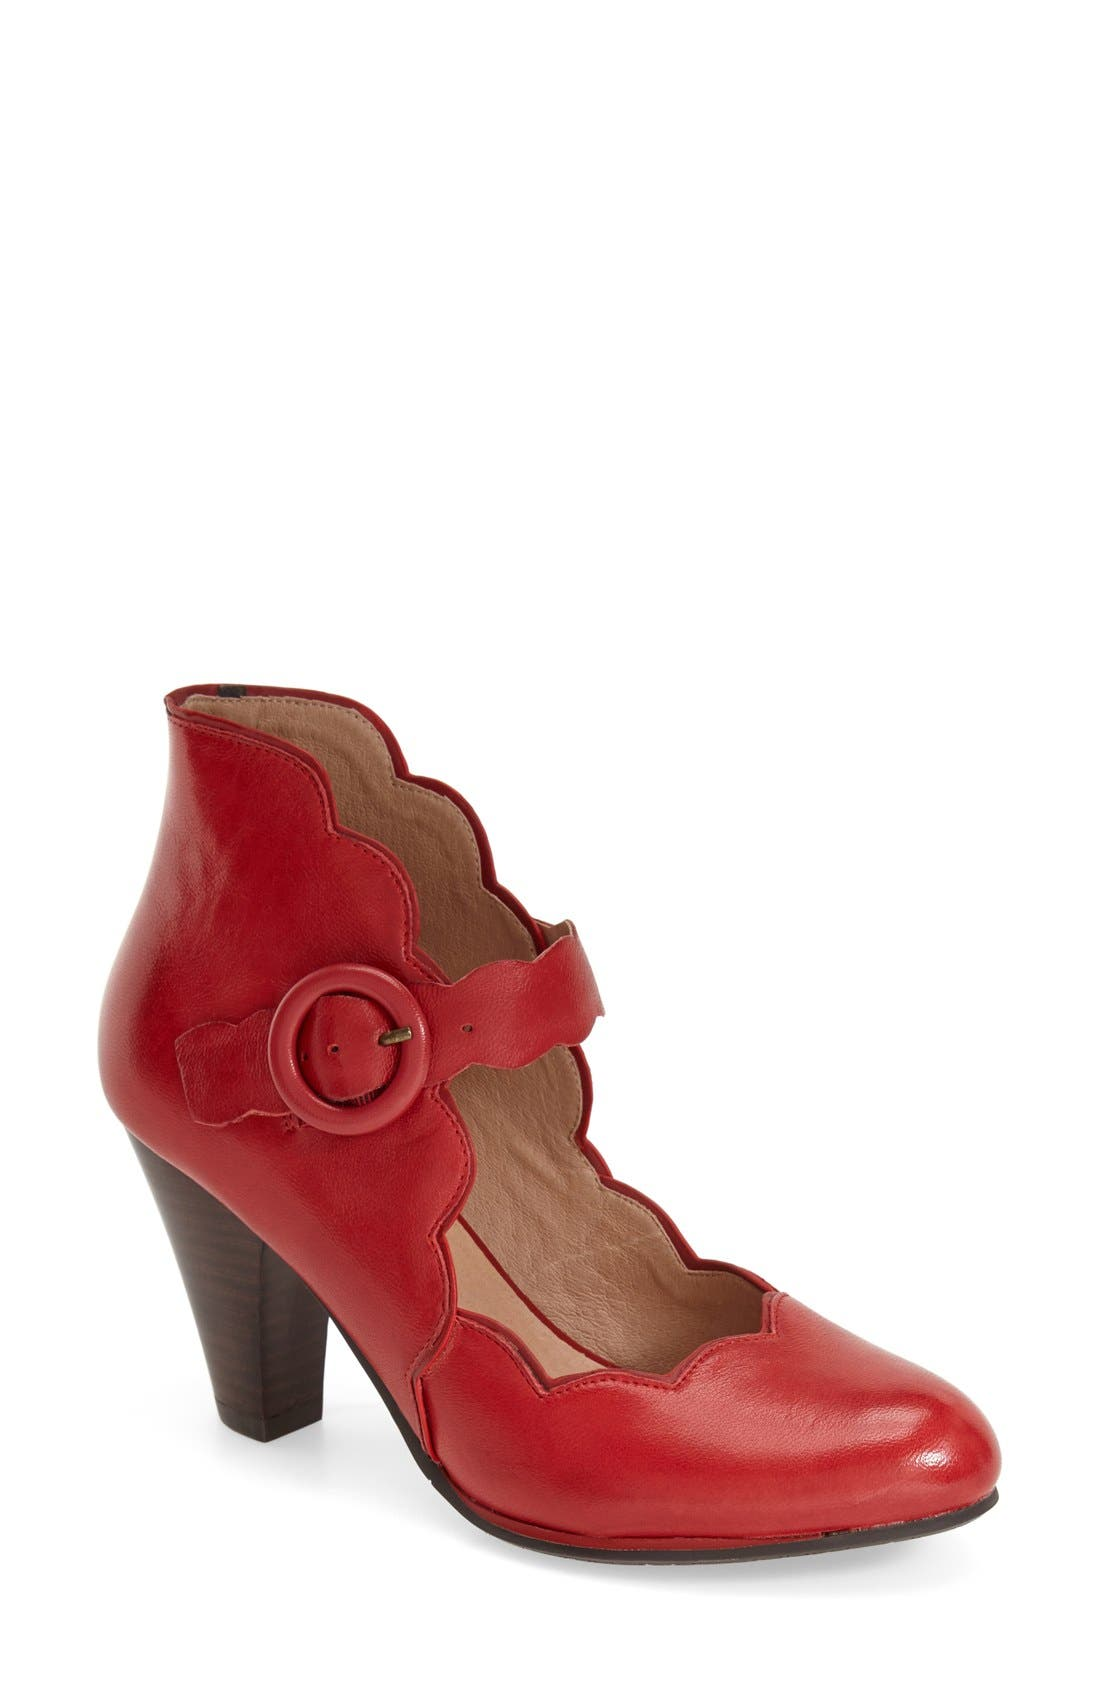 Alternate Image 1 Selected - Miz Mooz Footwear 'Carissa' Mary Jane Pump (Women)